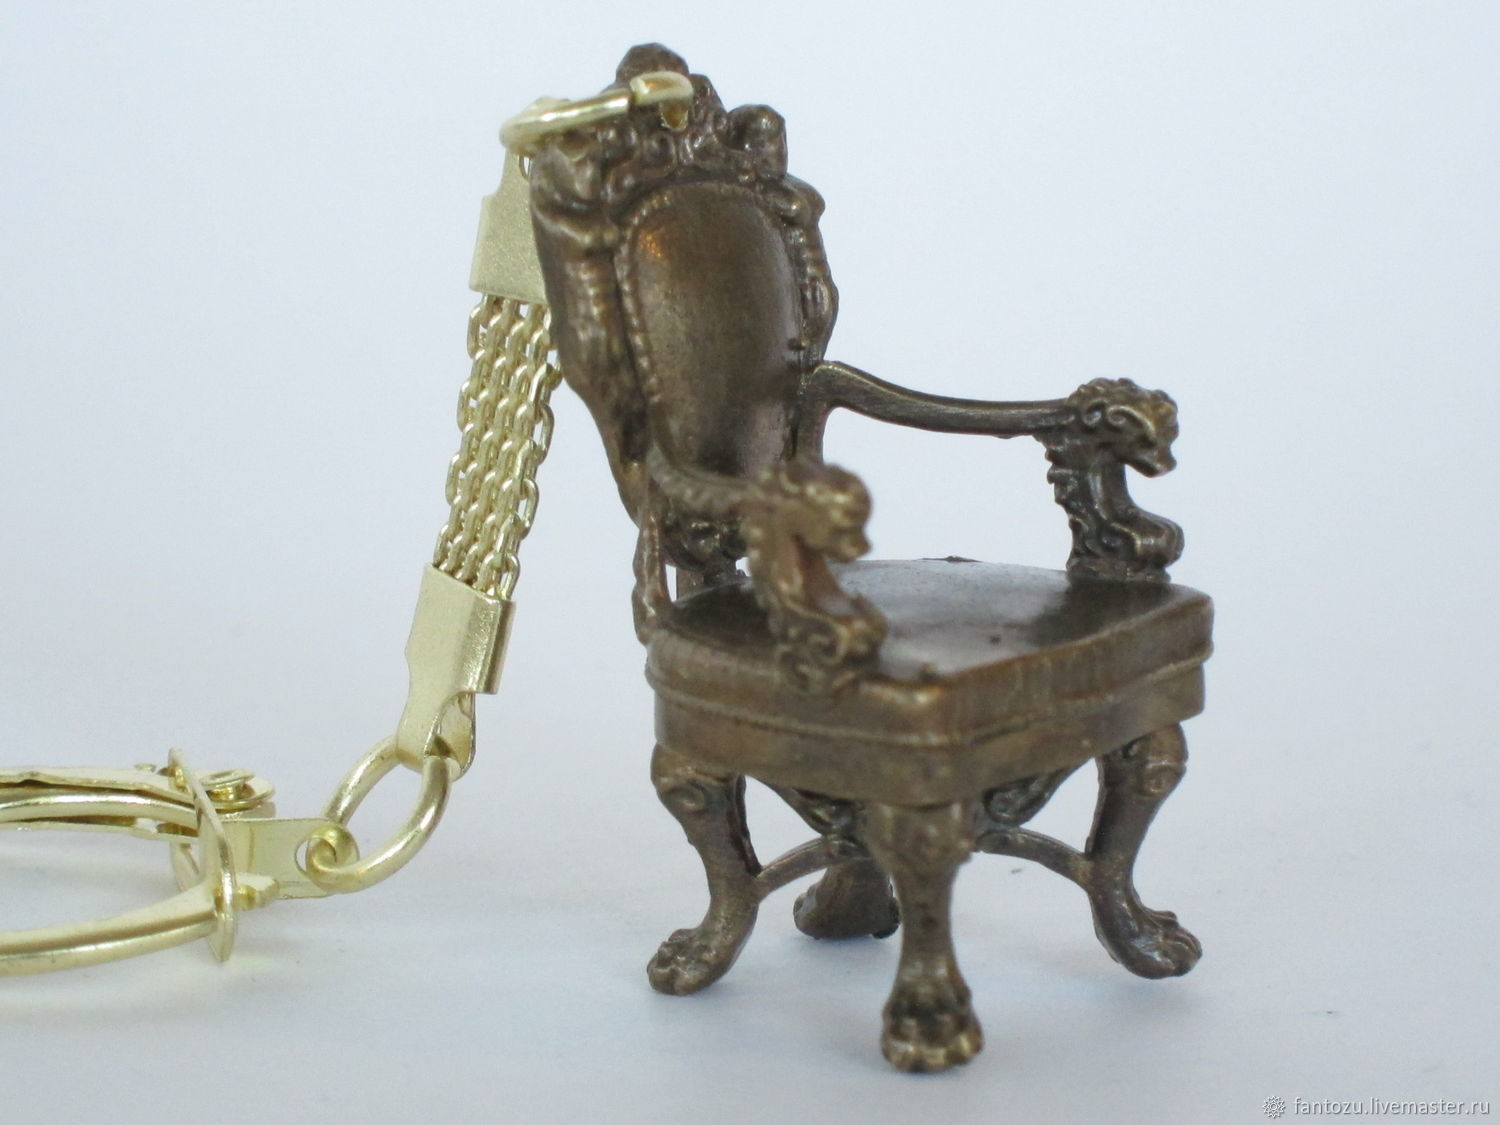 Brass key chain Chair, Key chain, Yaroslavl,  Фото №1